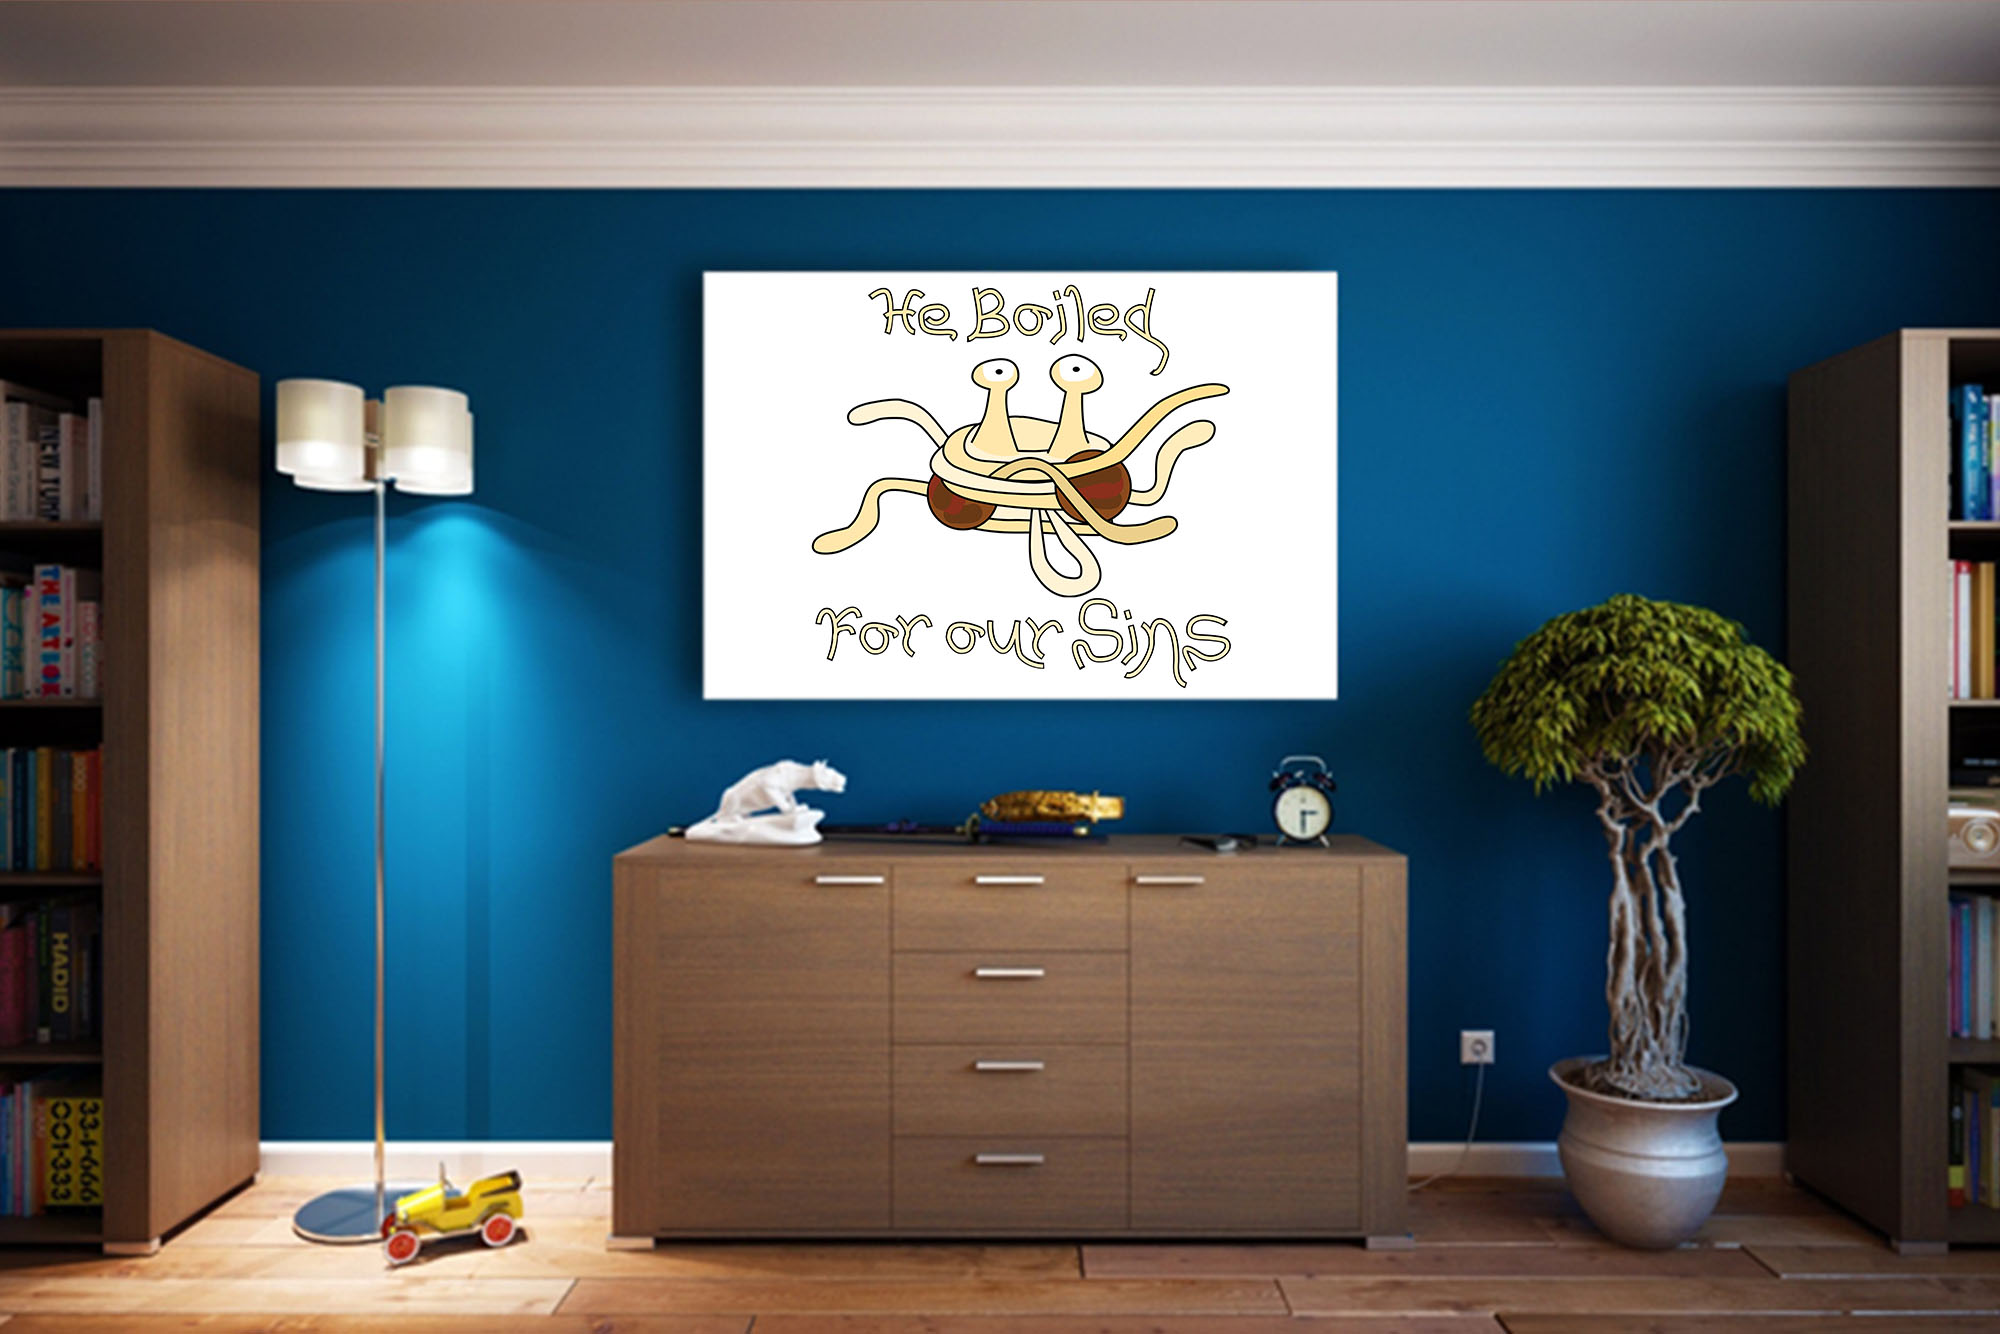 Flying Spaghetti Monster: He Boiled For Our Sins Art Print